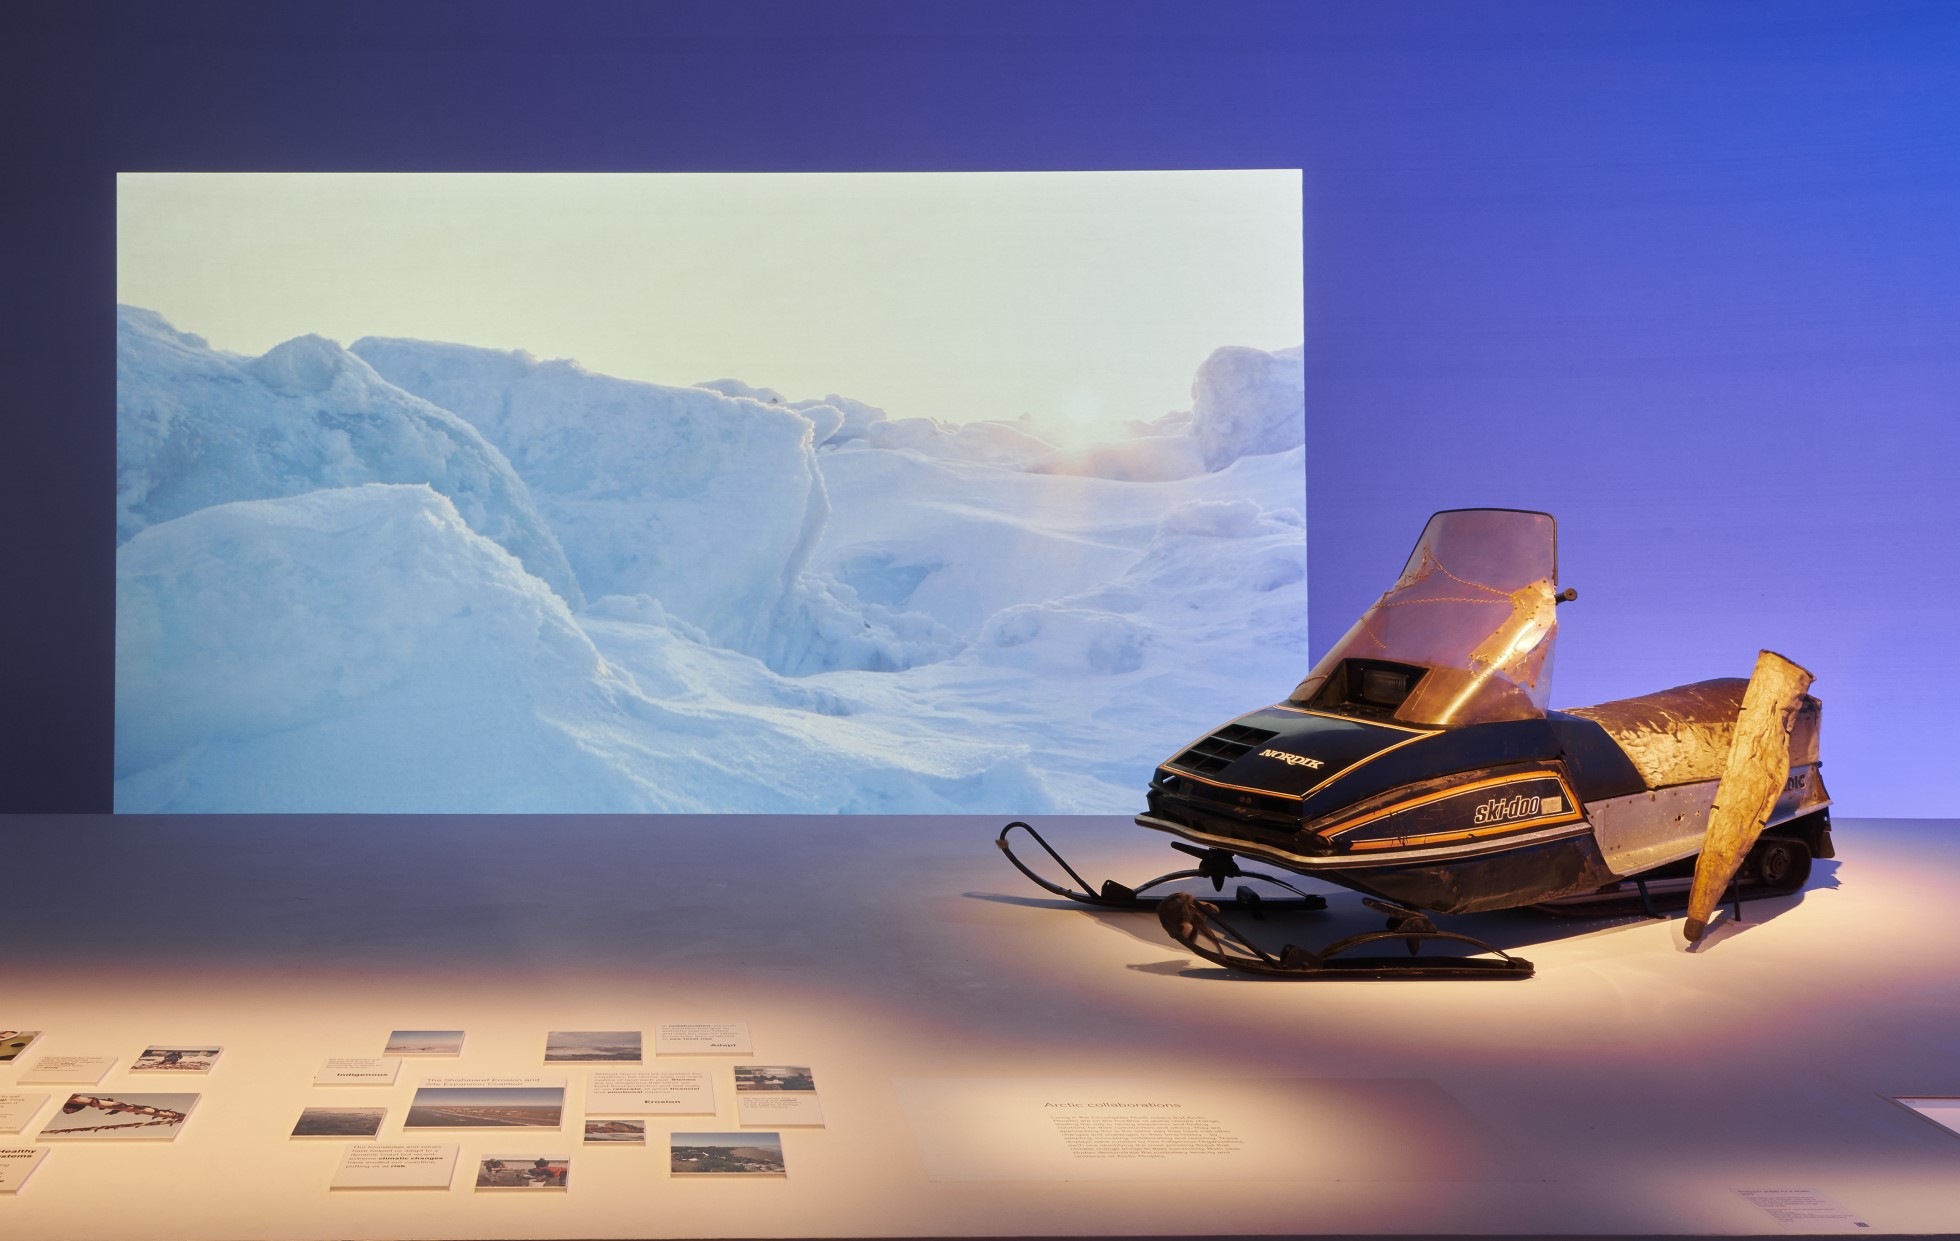 Photograph of a snow mobile on a platform inside the exhibition. Behind is a screen showing an image of a snowy landscape in the Arctic. There is dramatic lighting with a purple colour on the back wall.